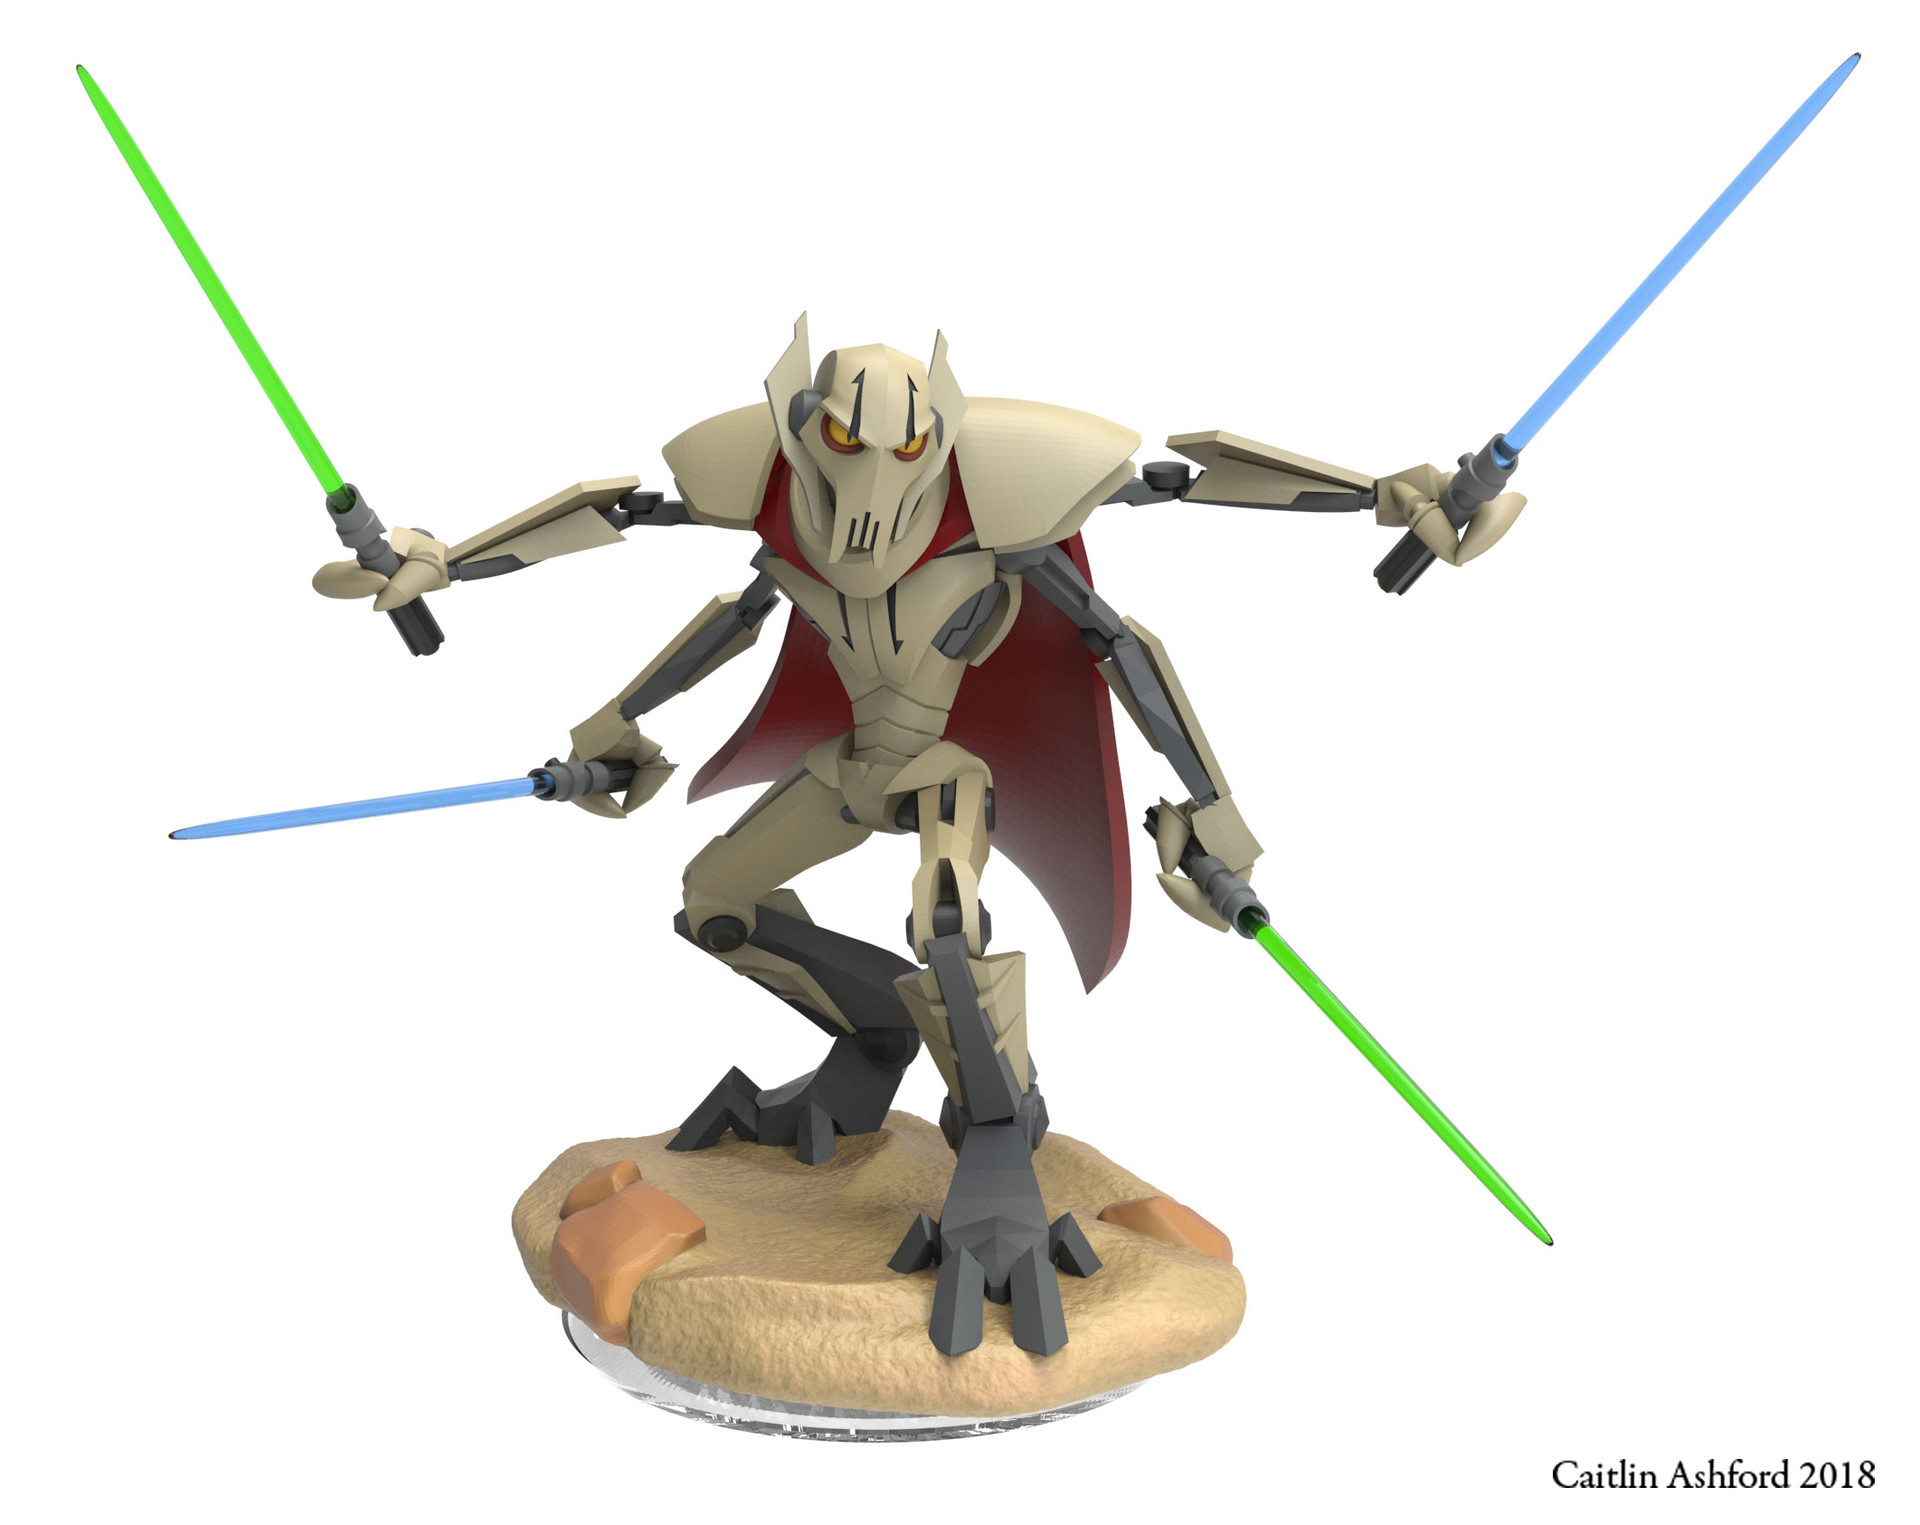 General Grevious (or Chesty McWheezypants as I like to call him)